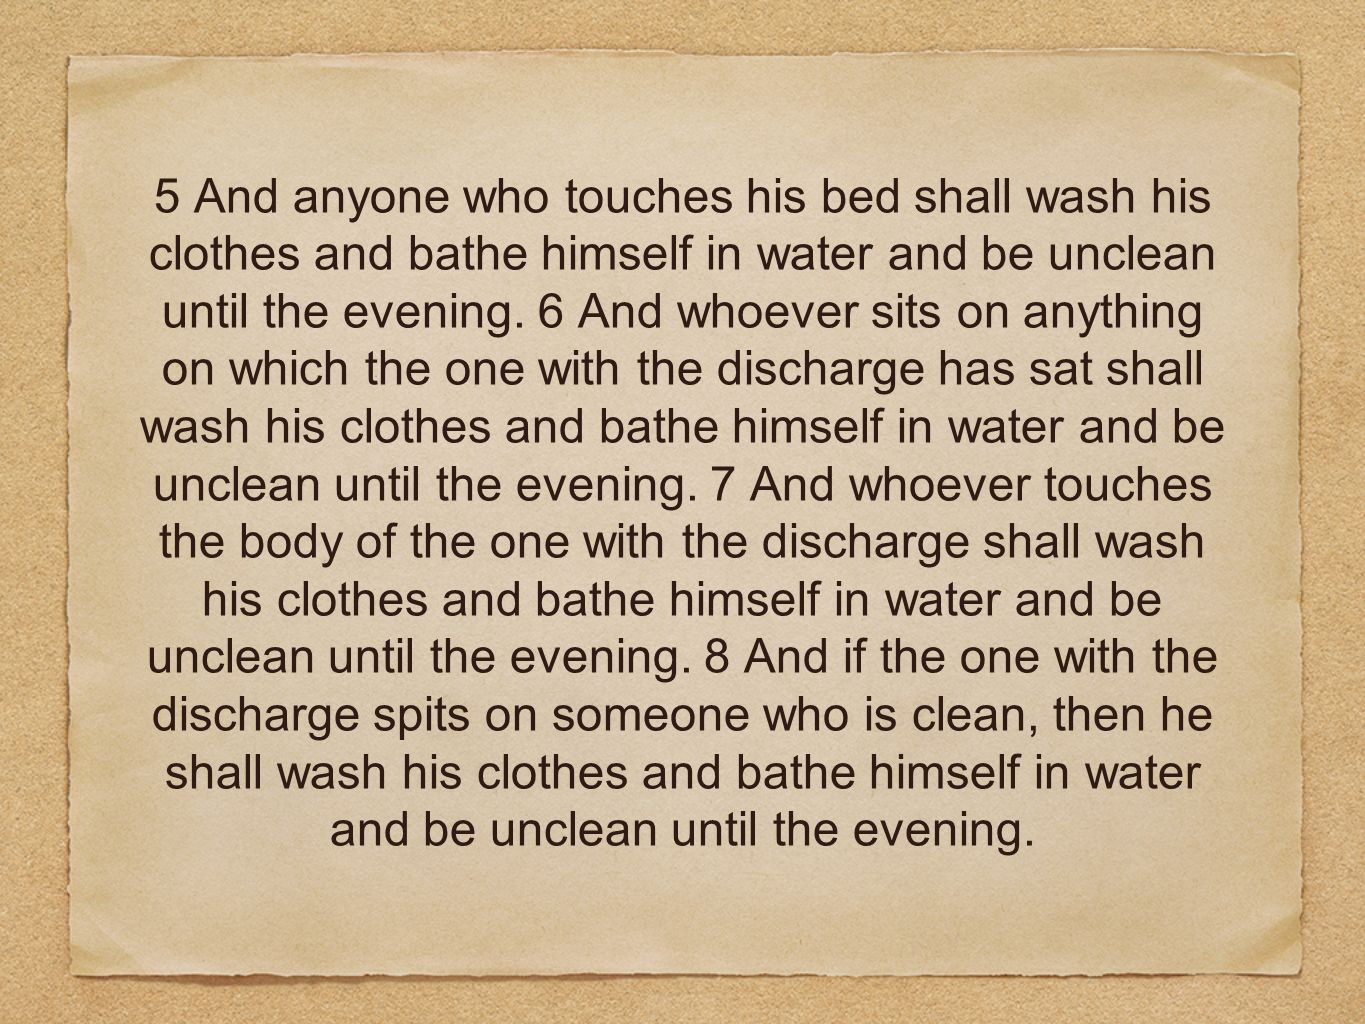 5 And anyone who touches his bed shall wash his clothes and bathe himself in water and be unclean until the evening.